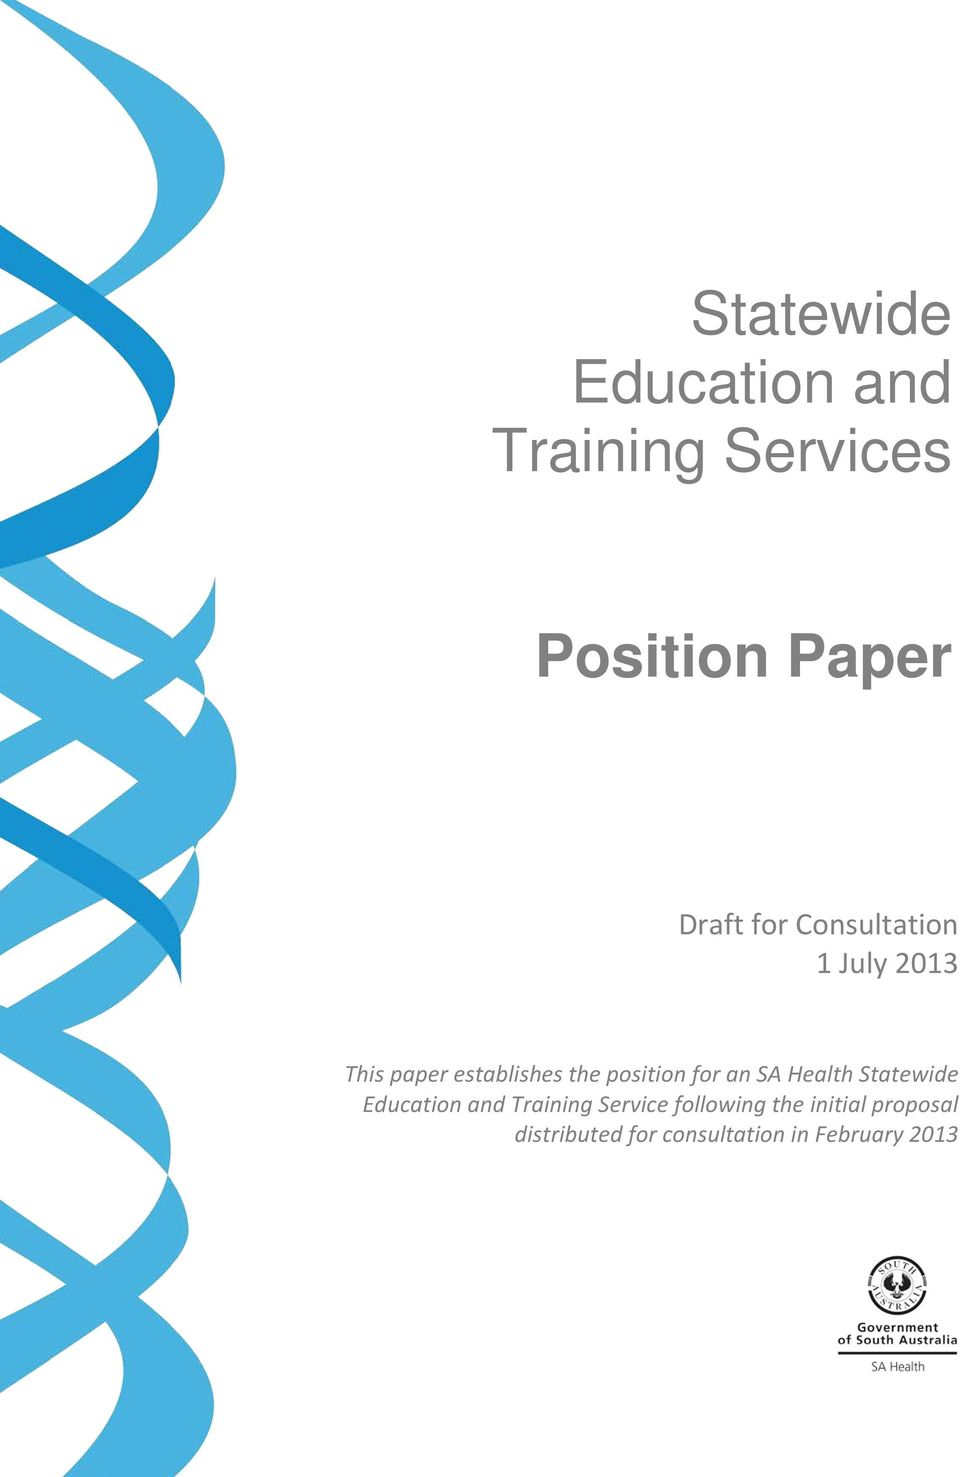 for an SA Health Statewide Education and Training Service